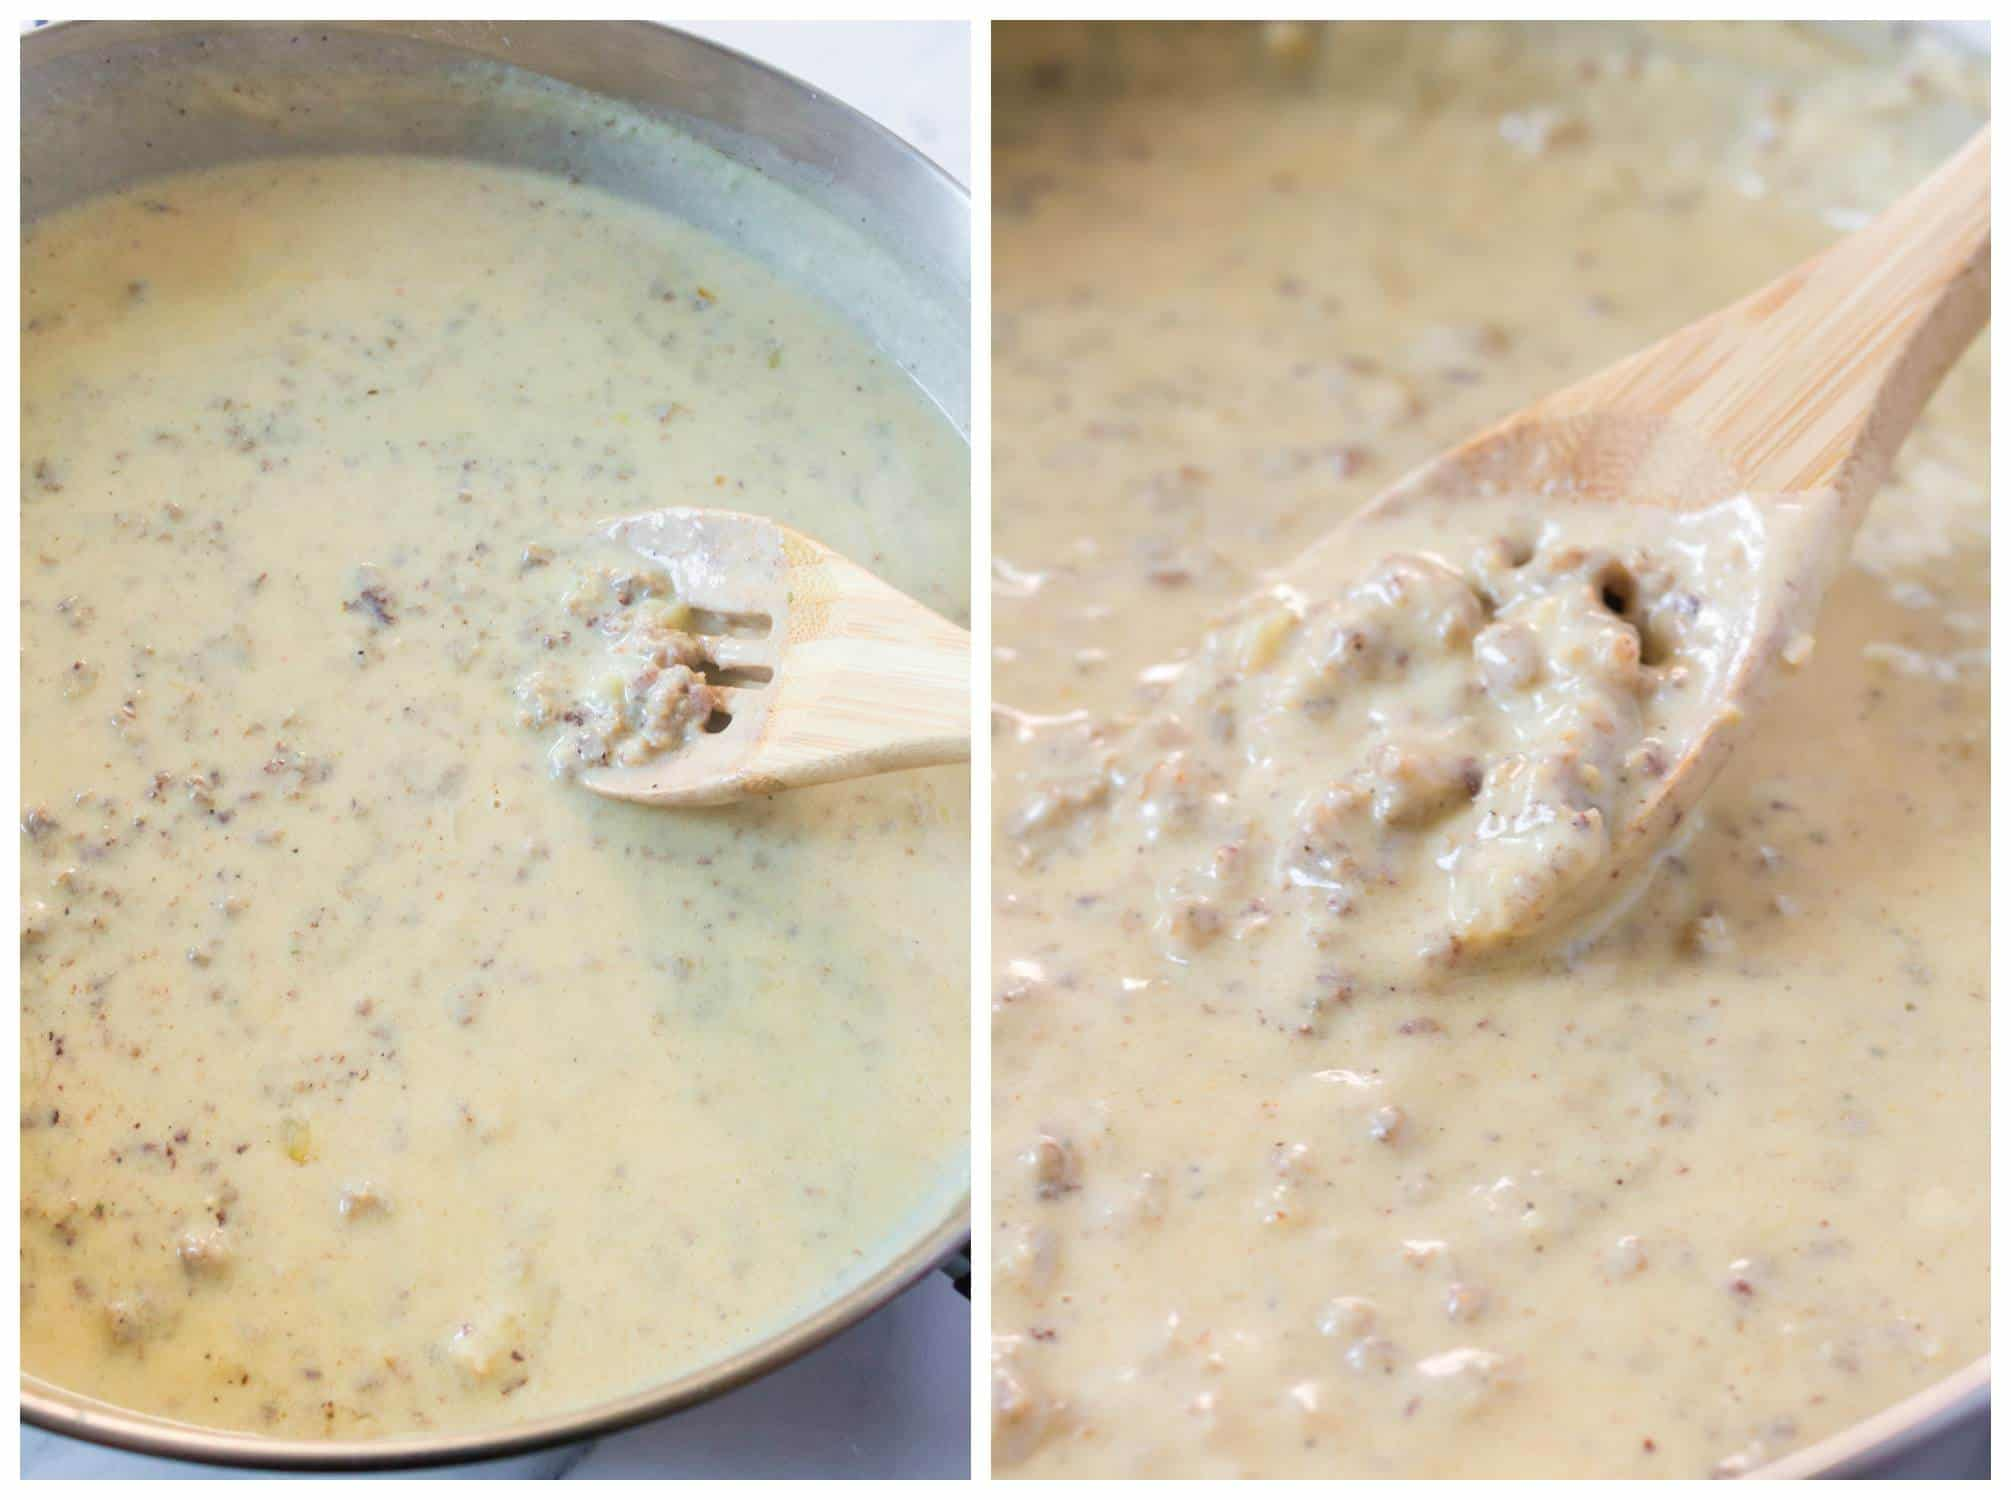 sausage gravy recipe best homemade from scratch biscuits